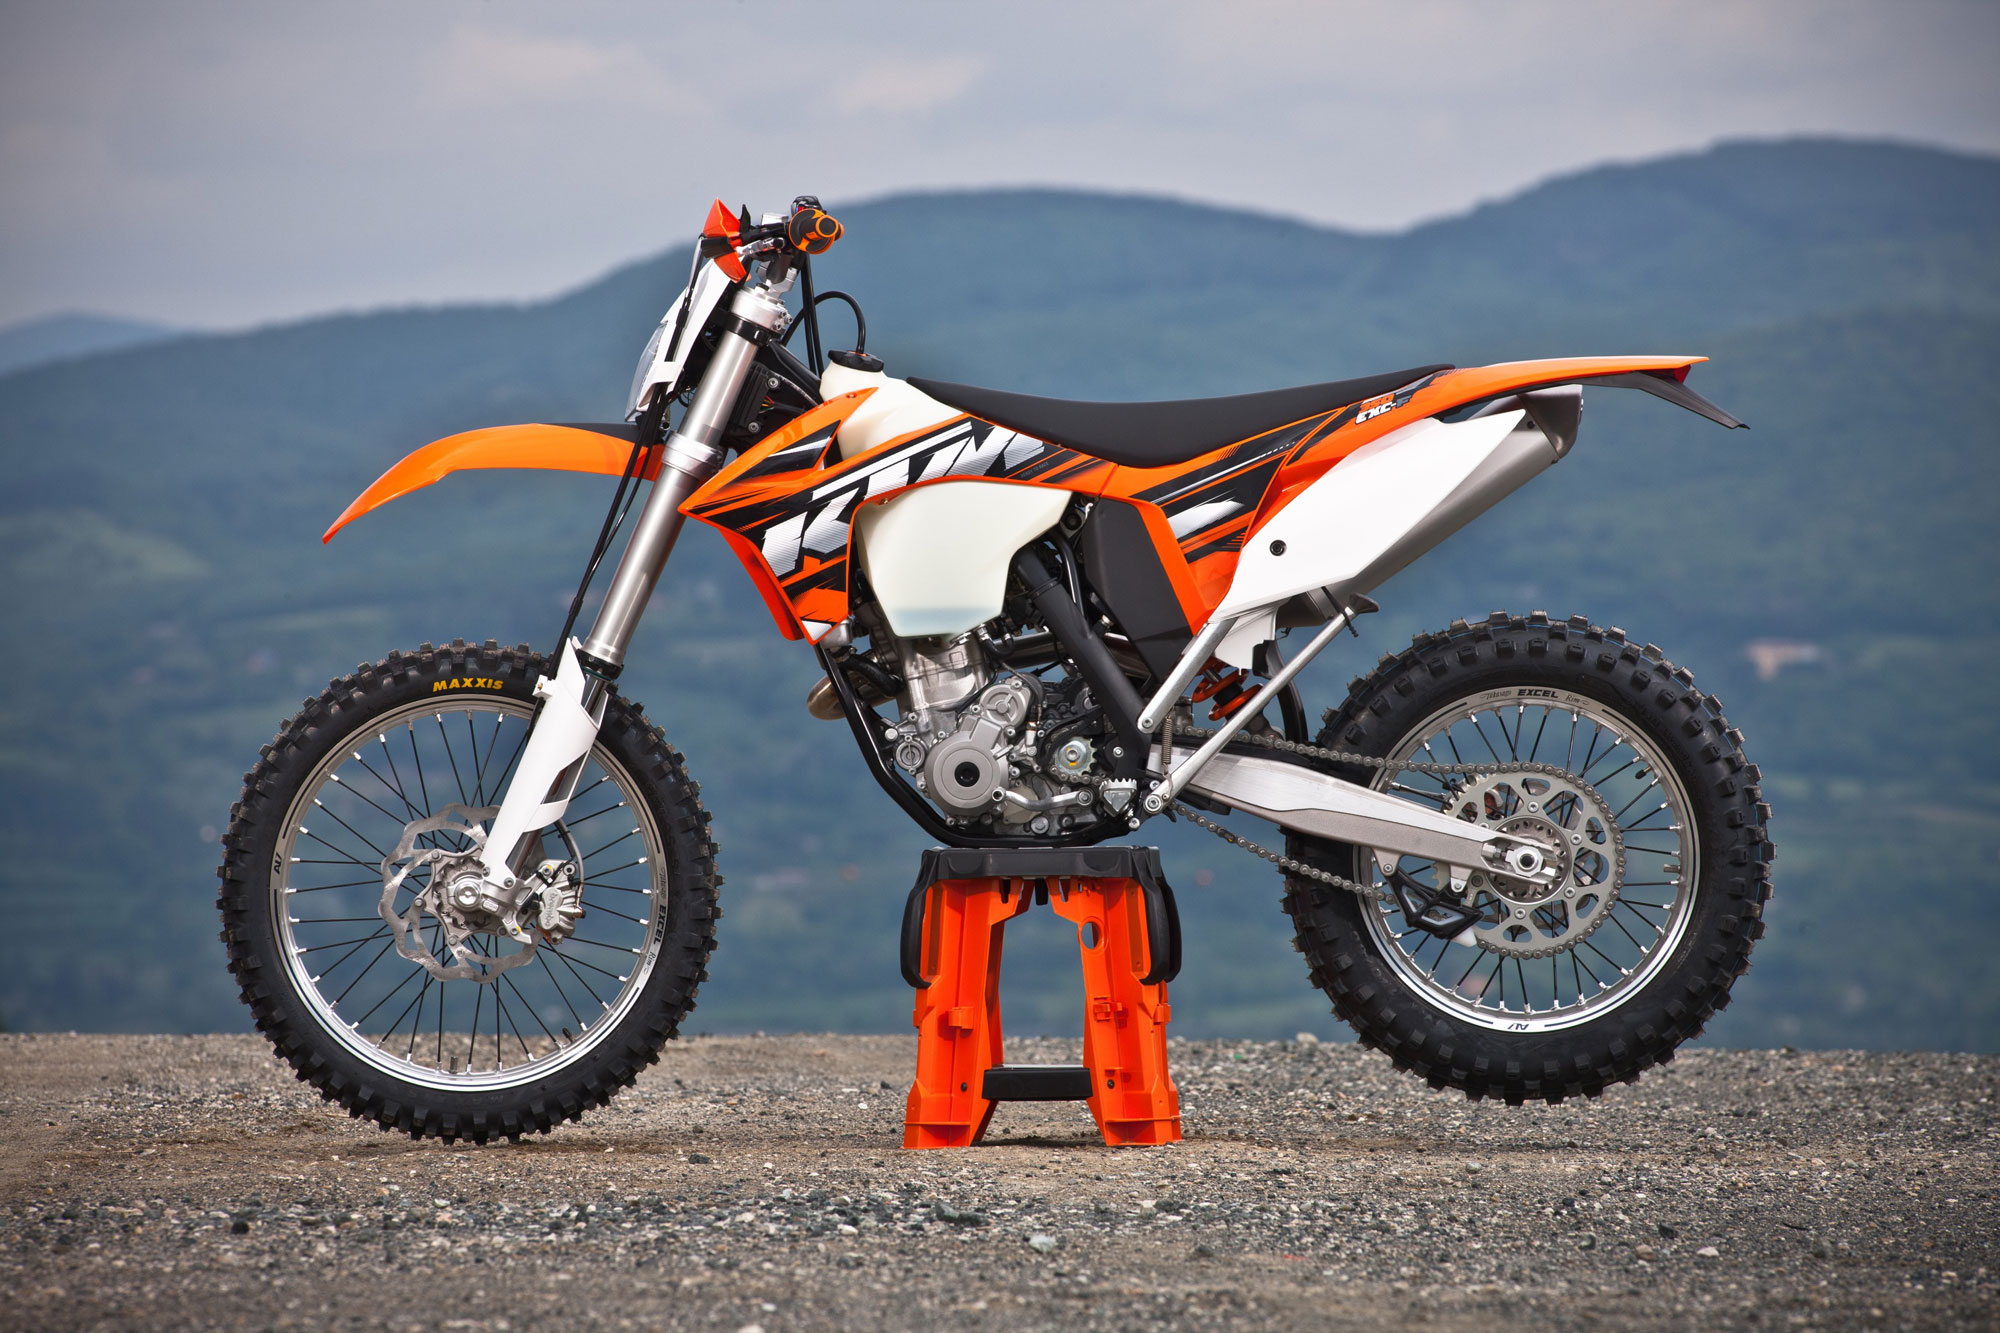 2013 Ktm 350exc F Review